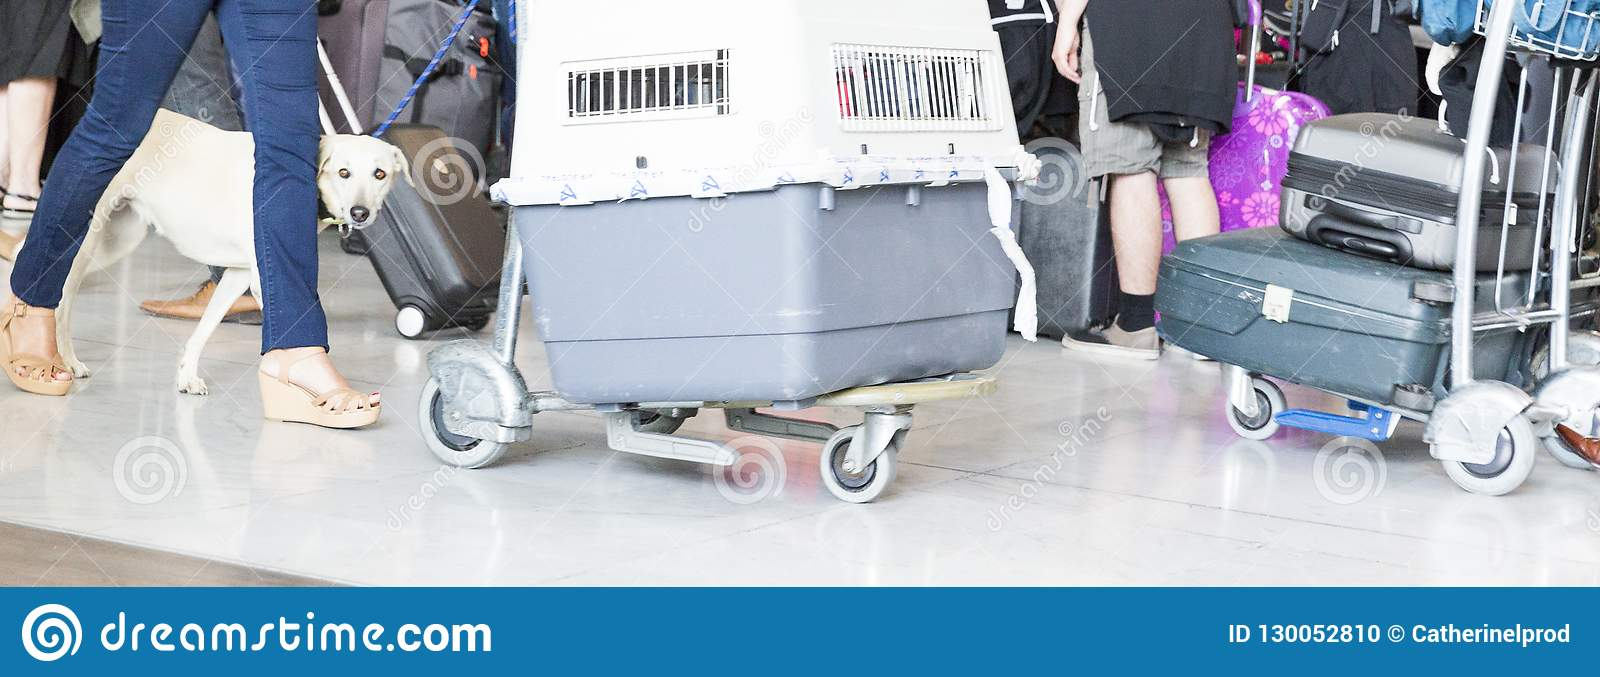 Man walking suitcase luggage bag and dog box on trolley in the airport.